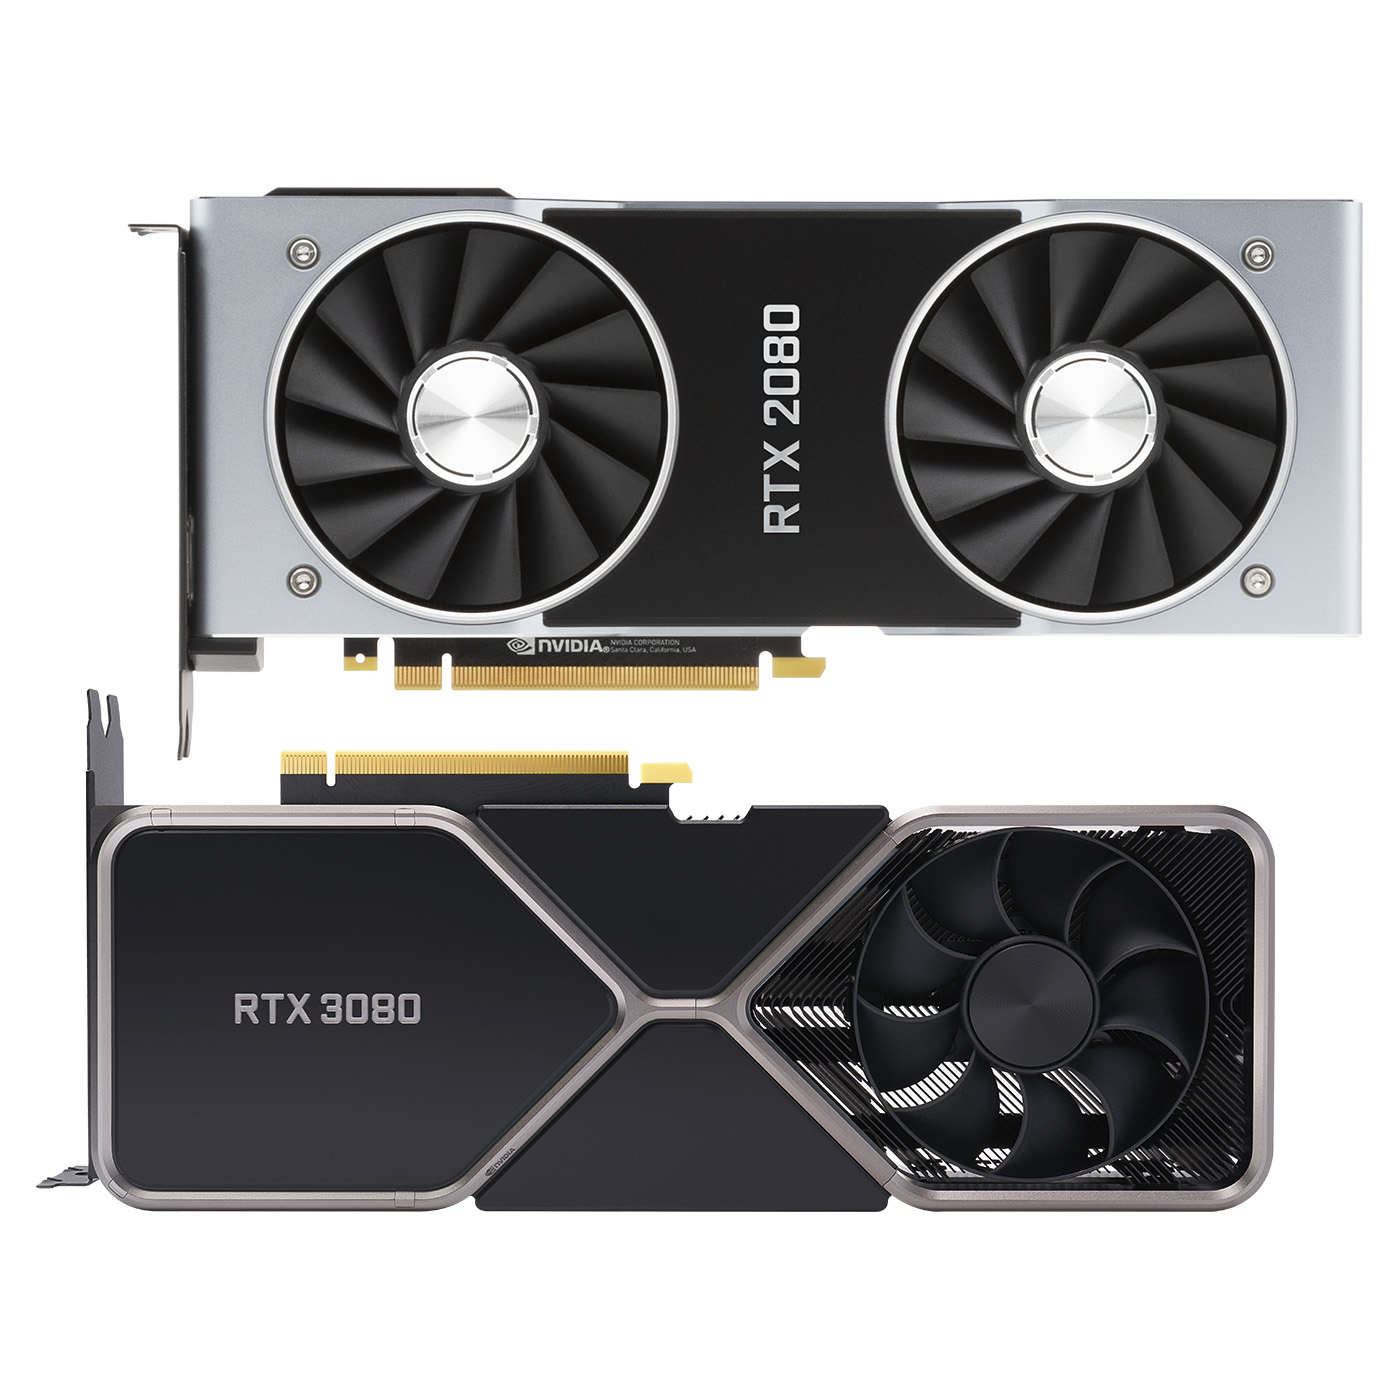 NVIDIA GeForce RTX 2080 and 3080